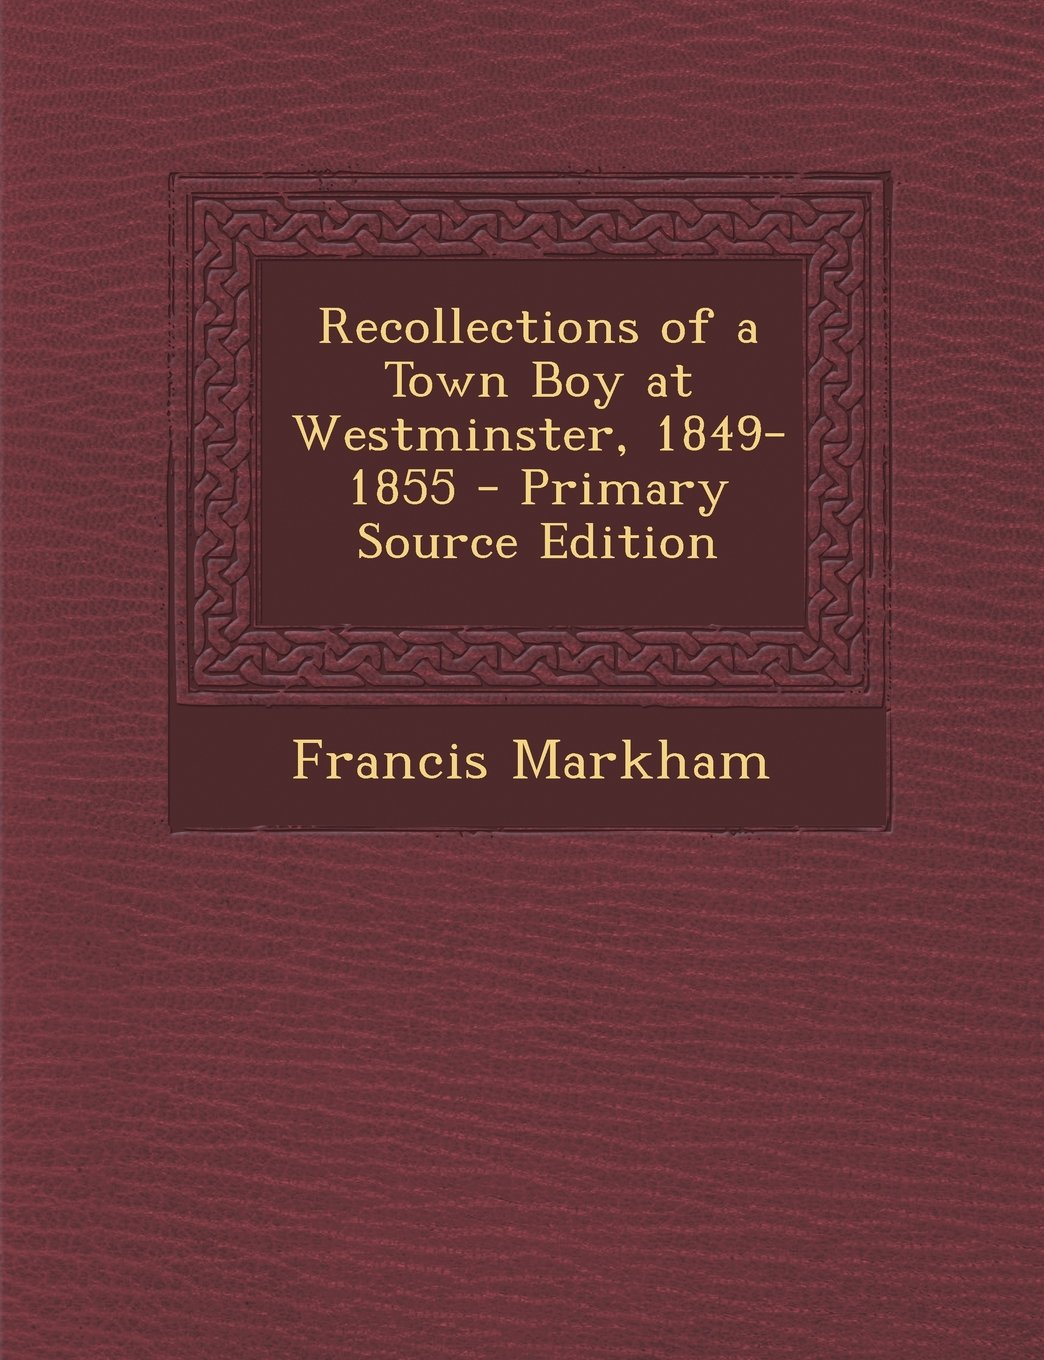 Download Recollections of a Town Boy at Westminster, 1849-1855 - Primary Source Edition PDF